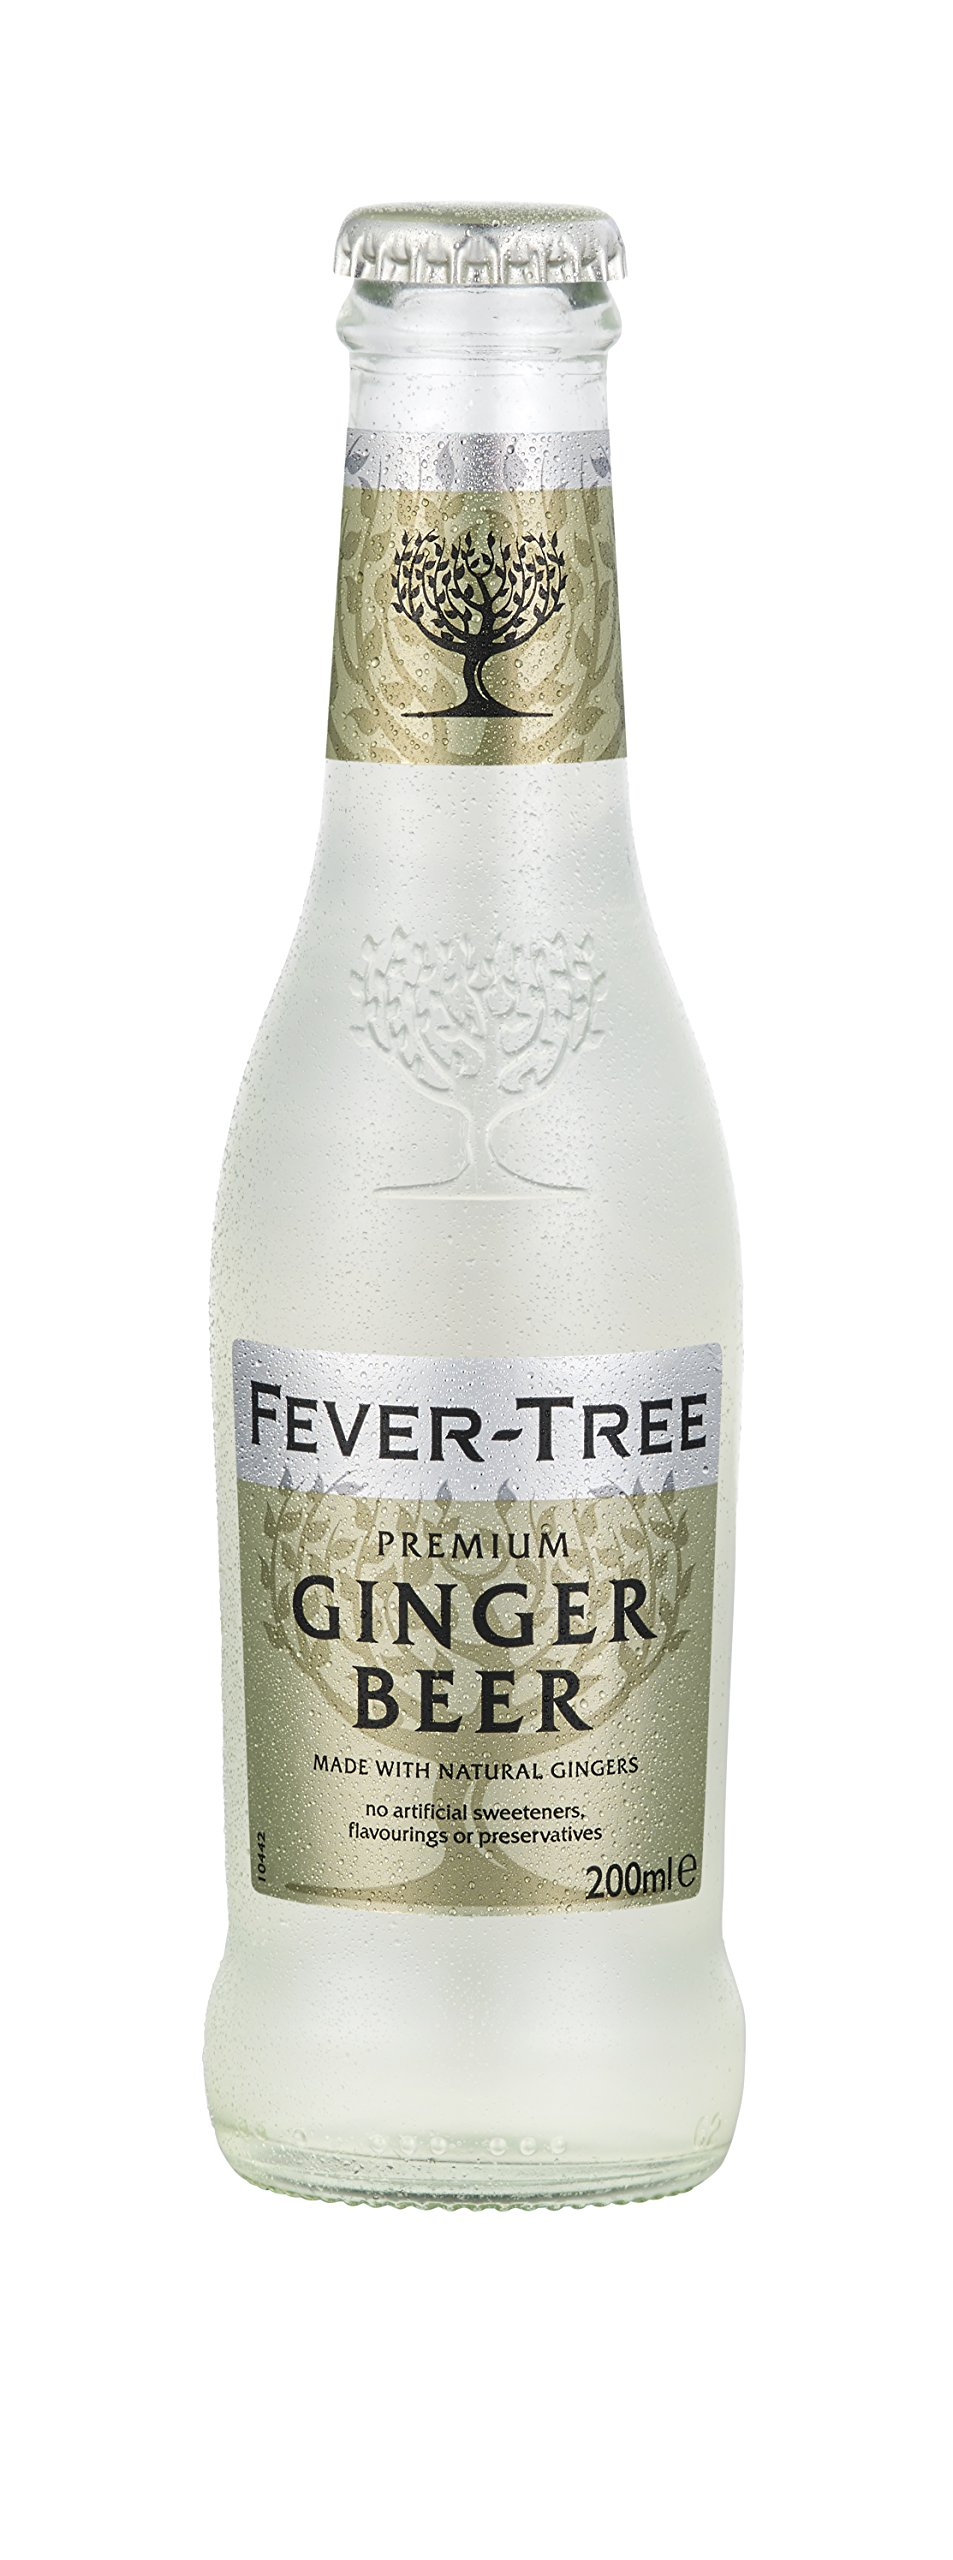 Fever-Tree Premium Ginger Beer, 6.8 Ounce Glass Bottles (Pack of 24)